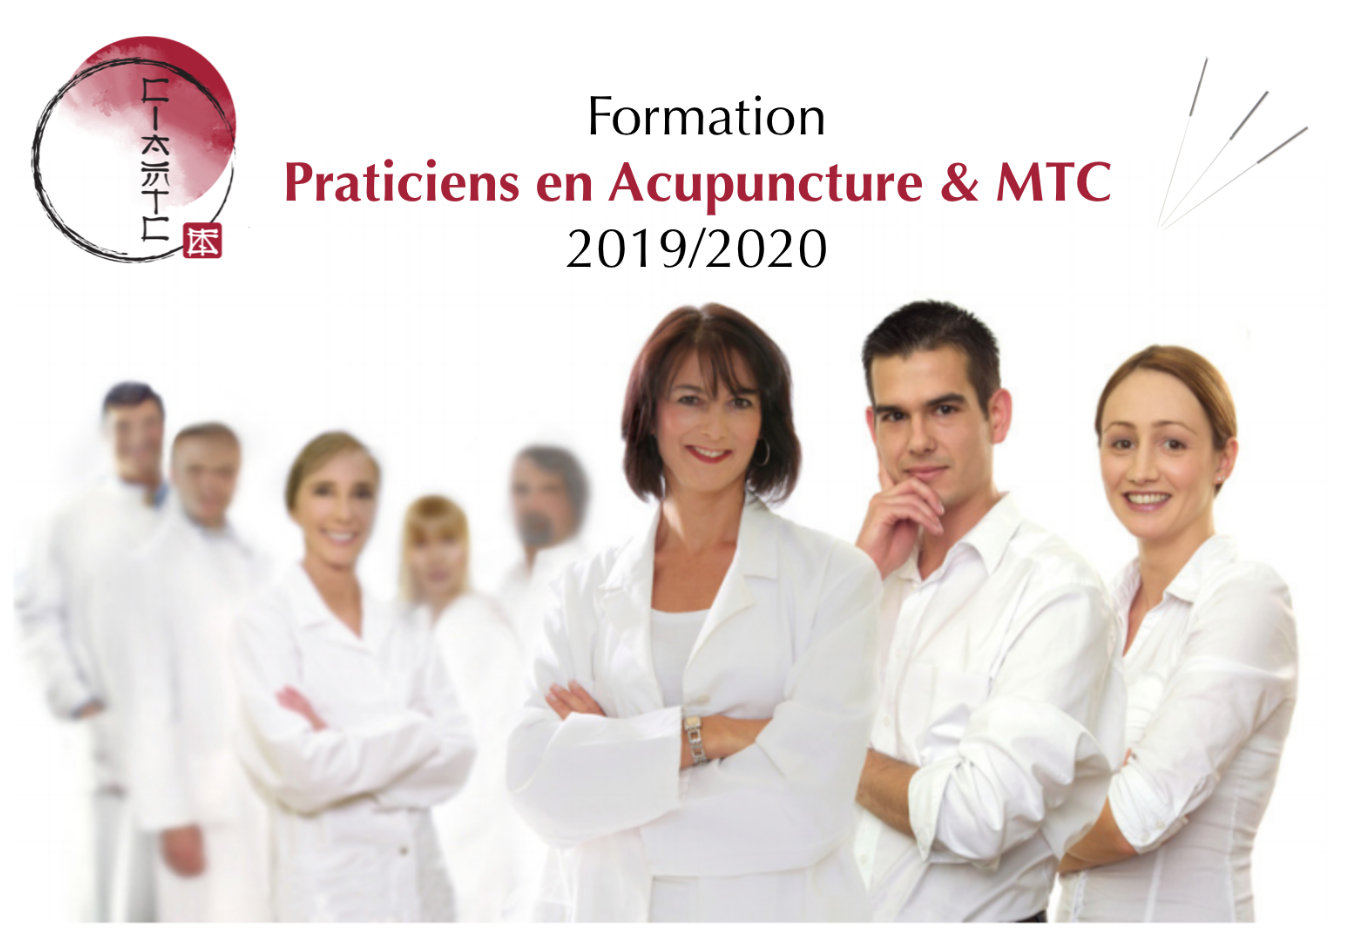 Formation Acupuncture CIAMTC